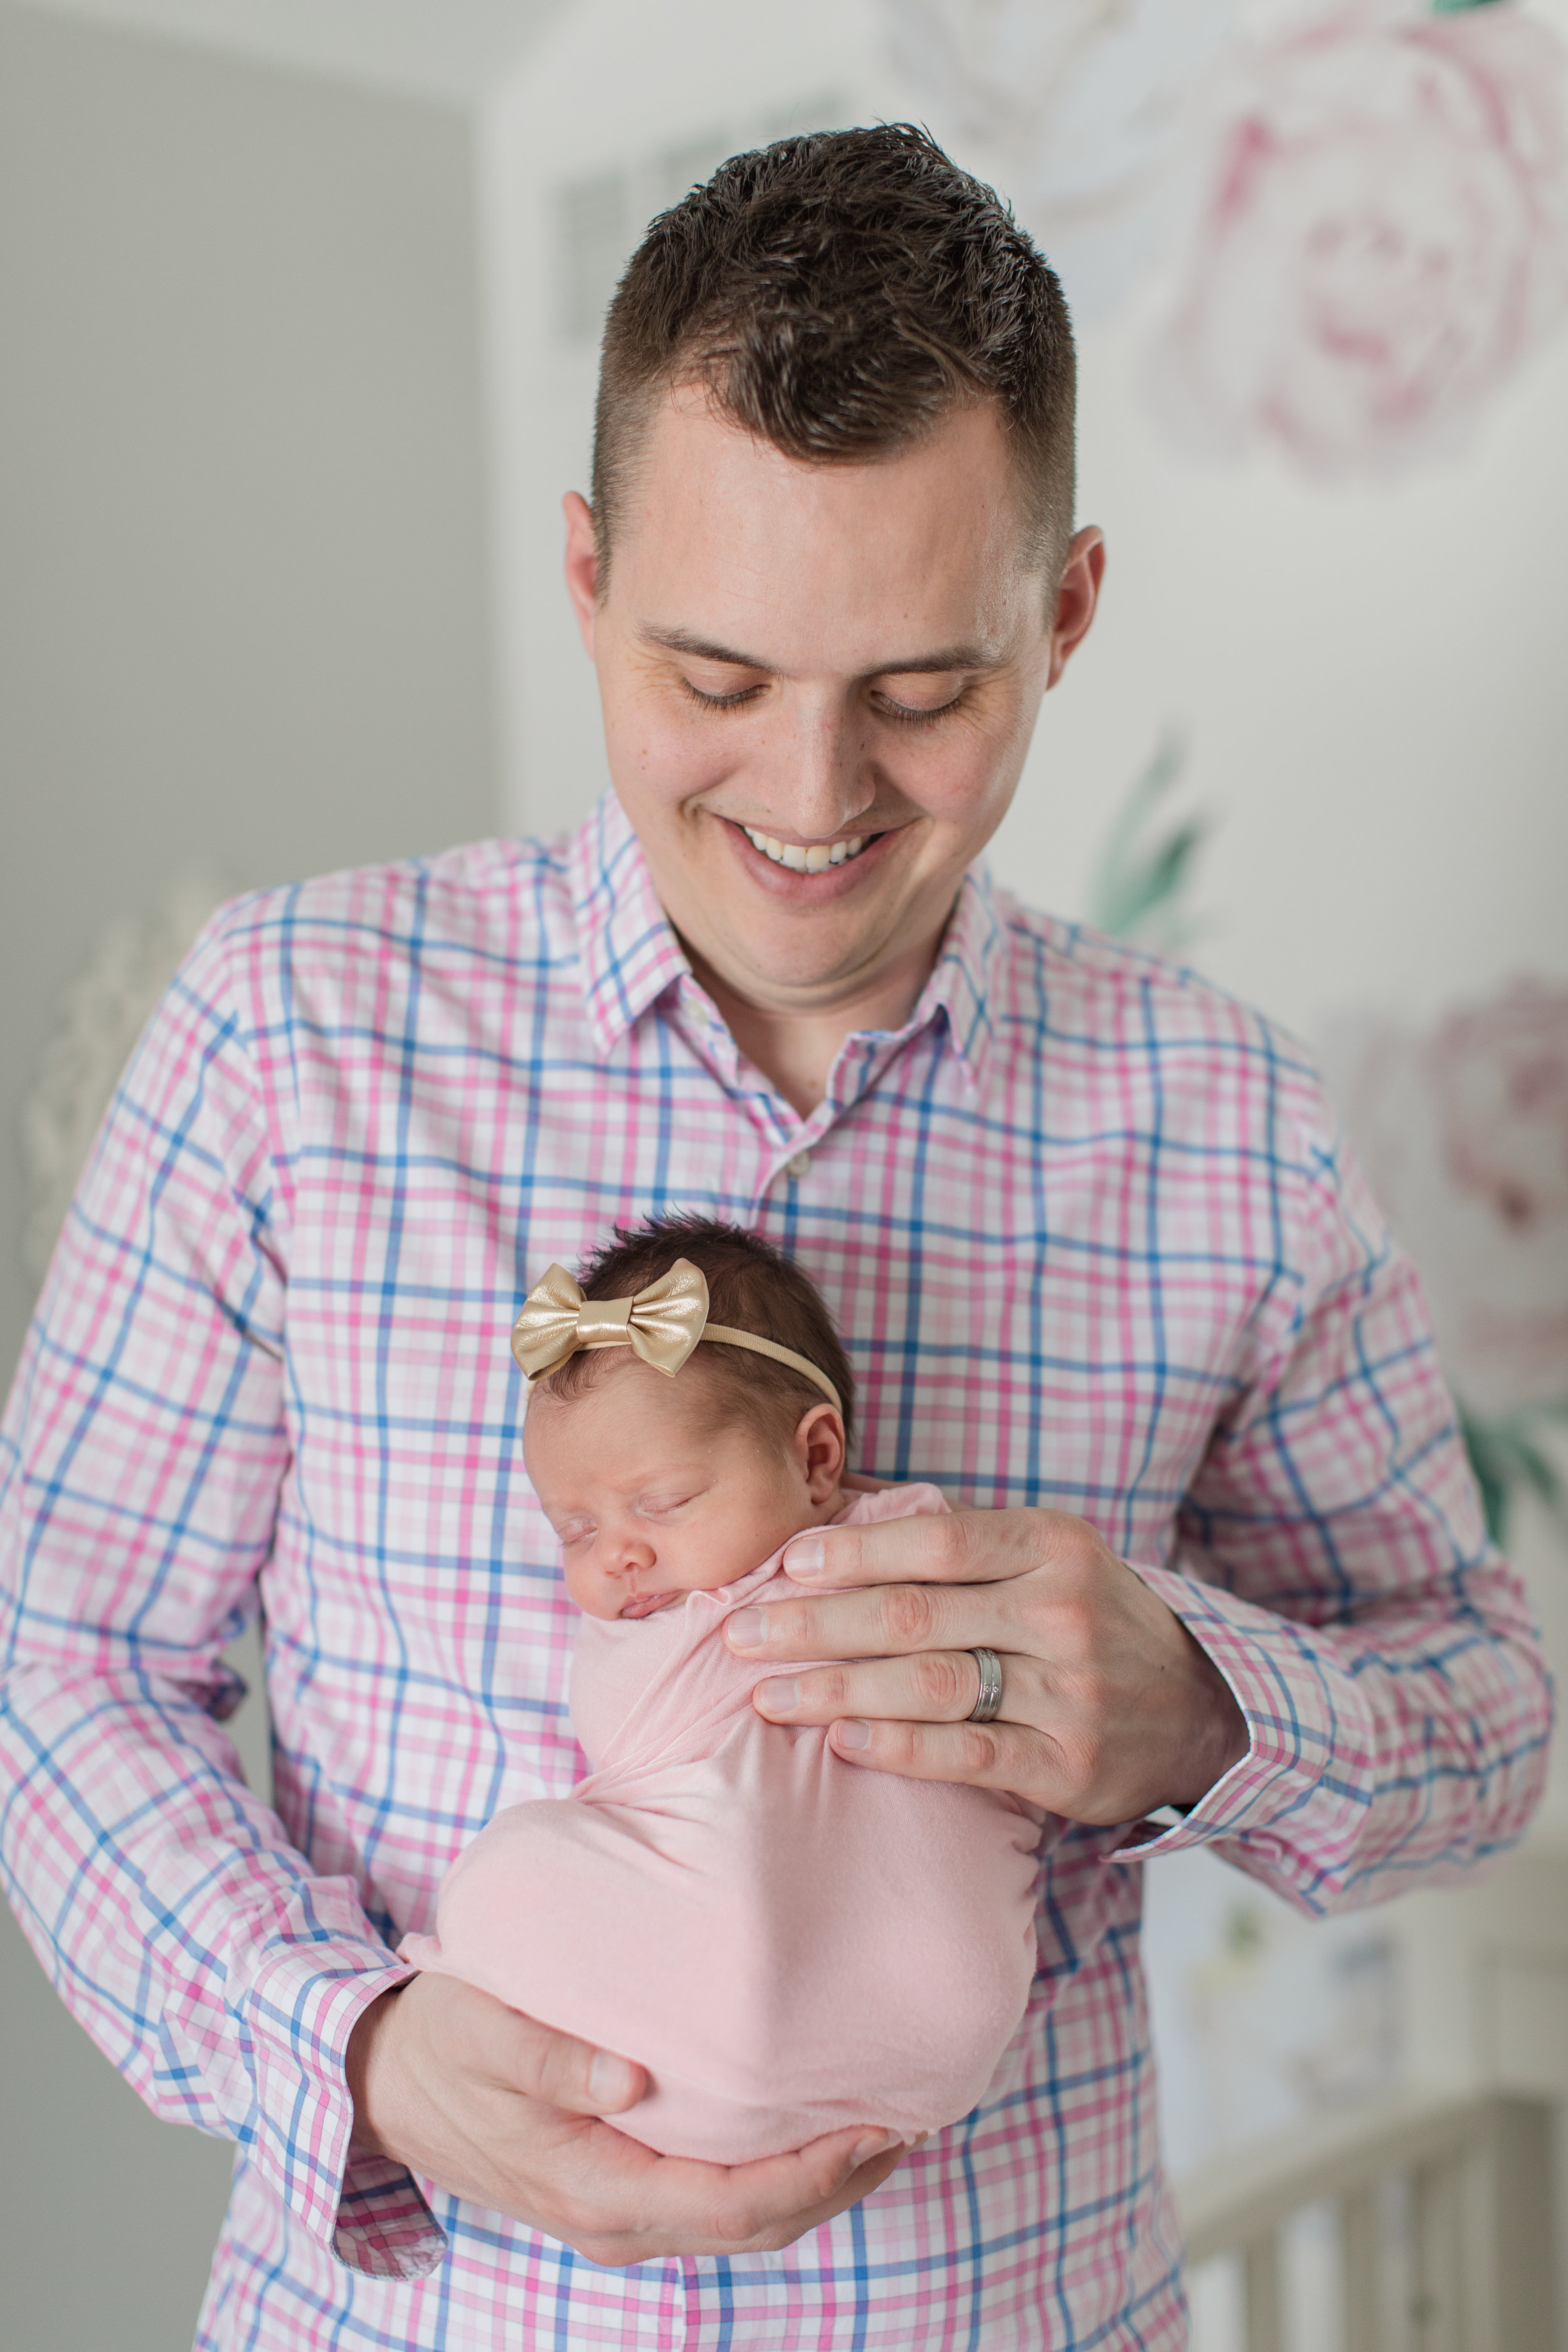 Lifestyle picture with dad and baby girl